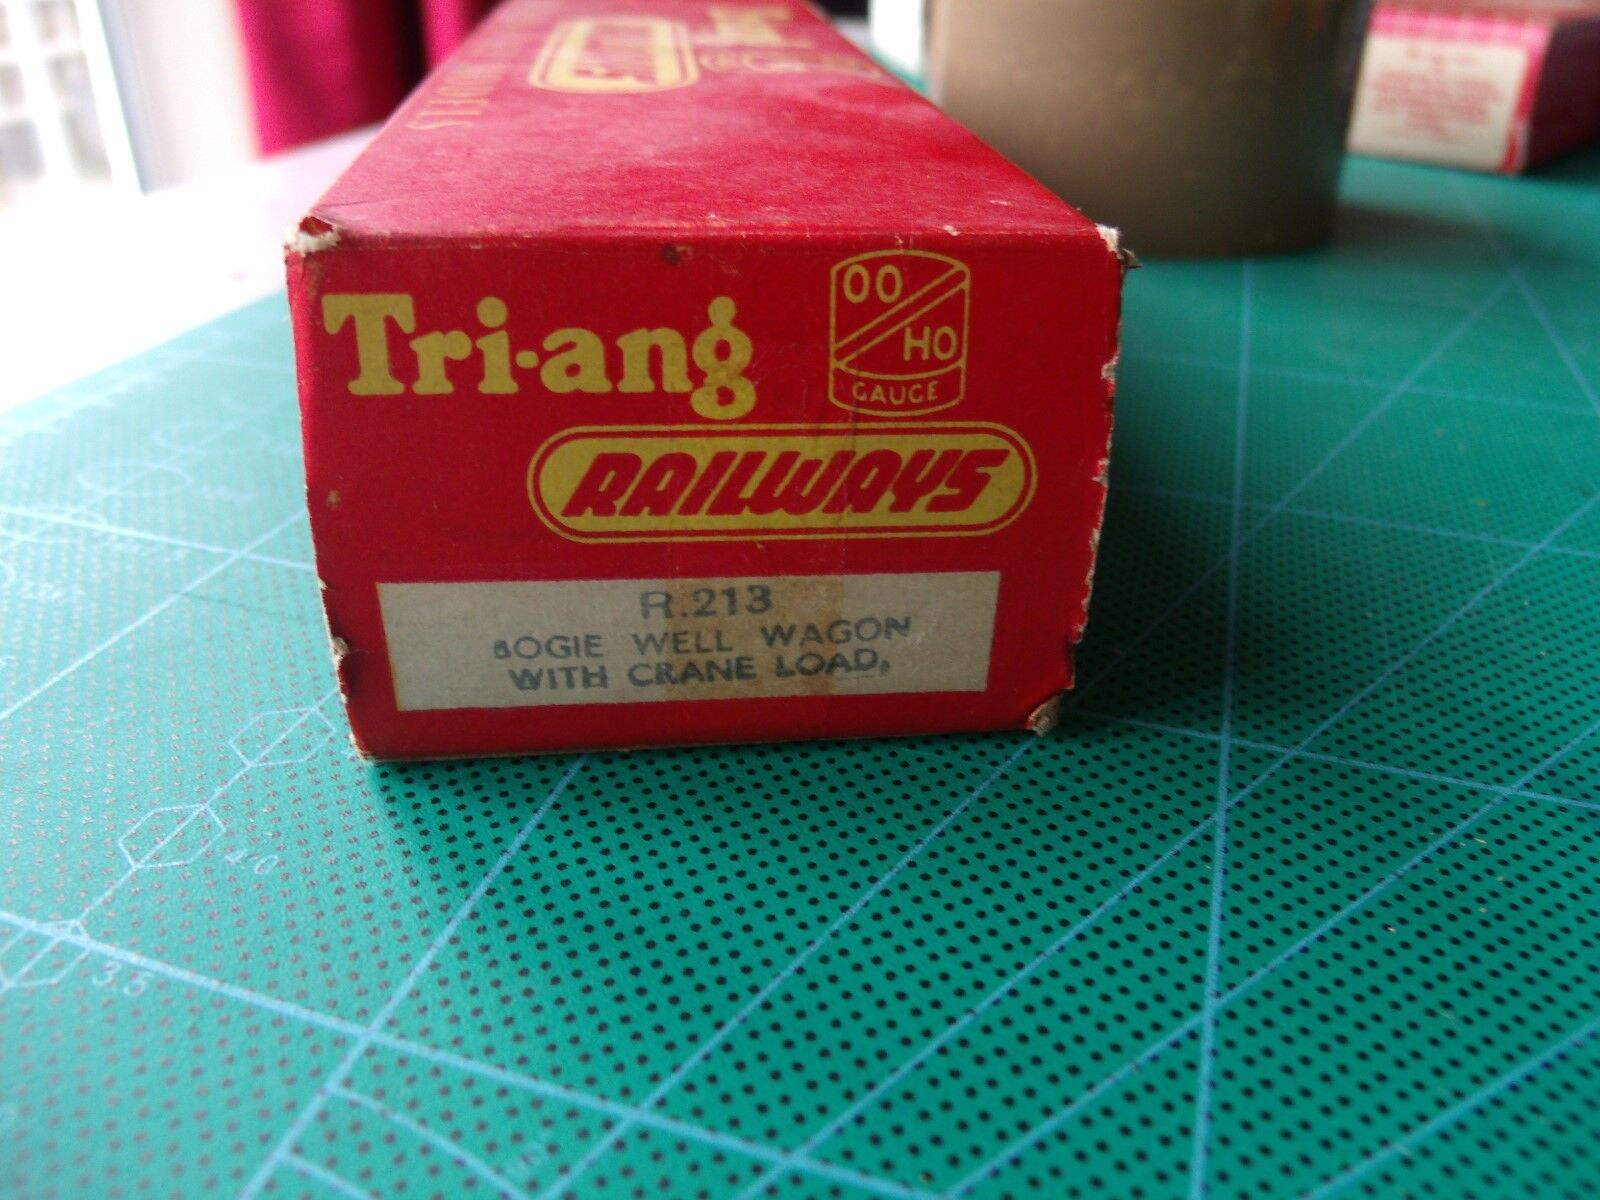 OO GAUGE TRIANG - BOGIE WELL WAGON WAGON WAGON WITH CRANE LOAD R213  - with original straps d7ebb6